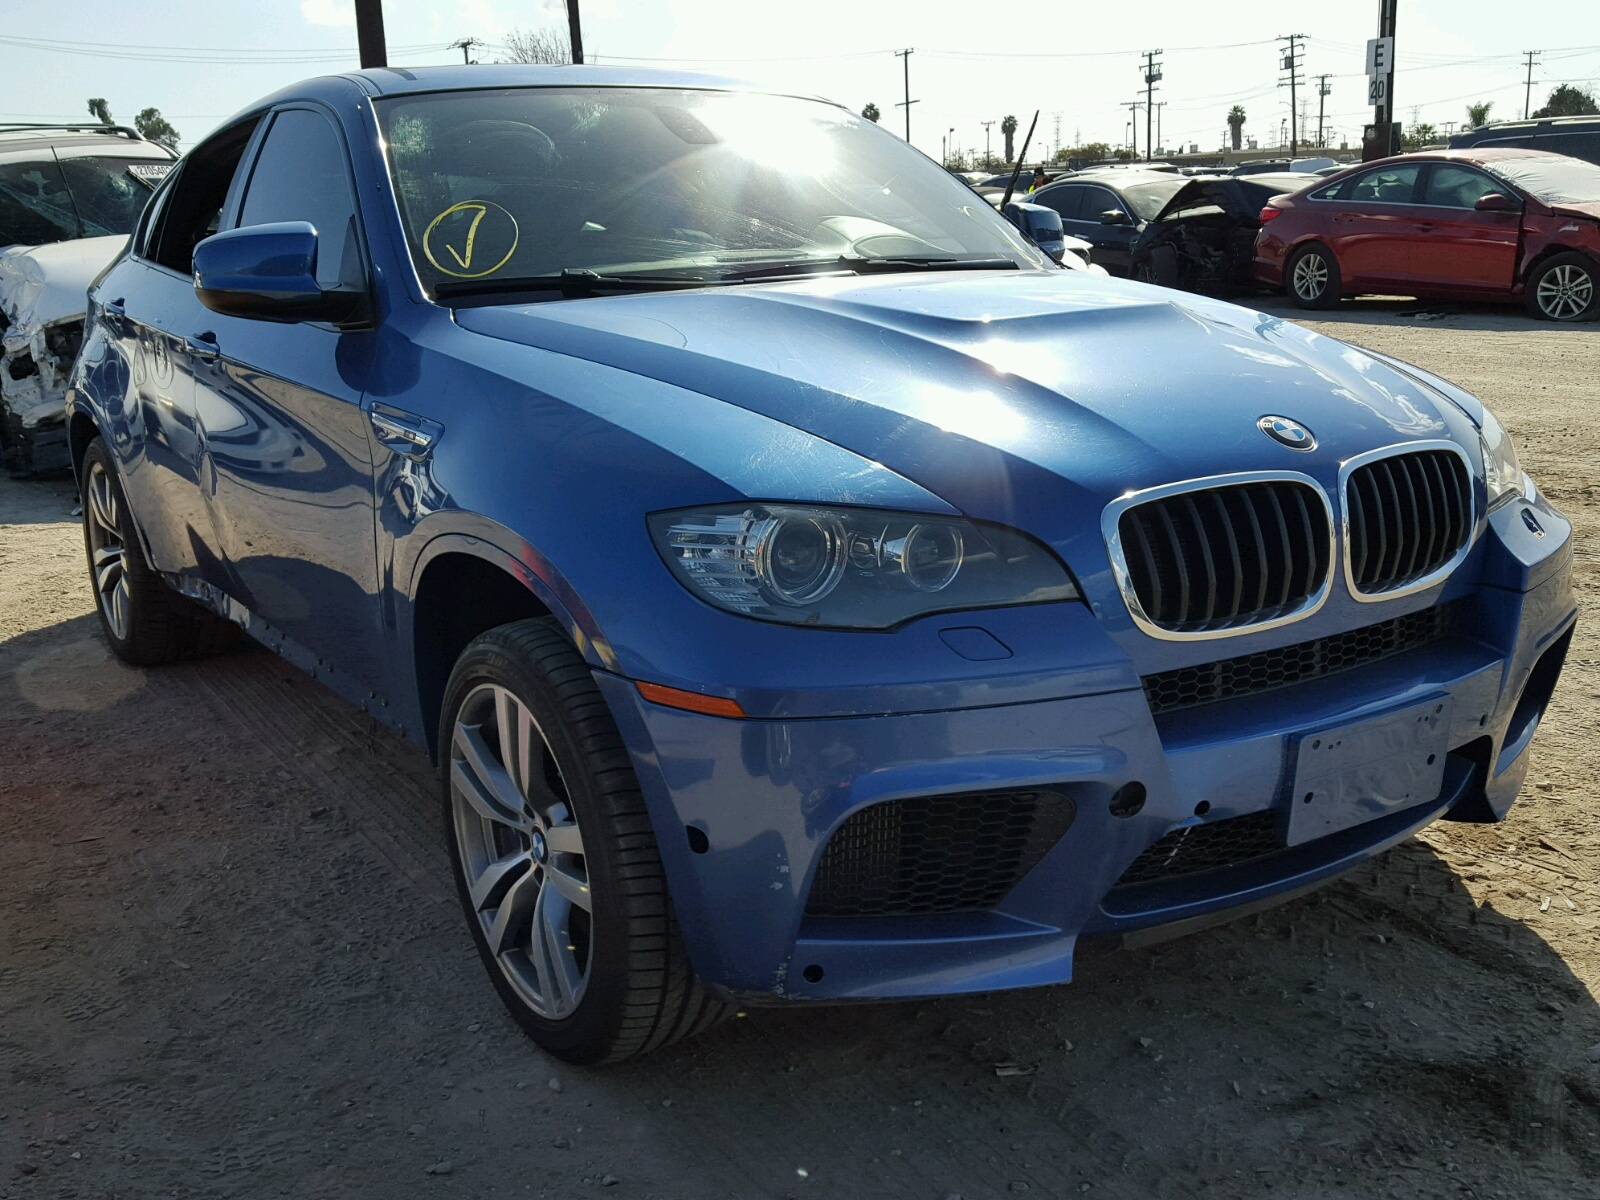 Auto Auction Ended On Vin 5uxfg8c58el592943 2014 Bmw X6